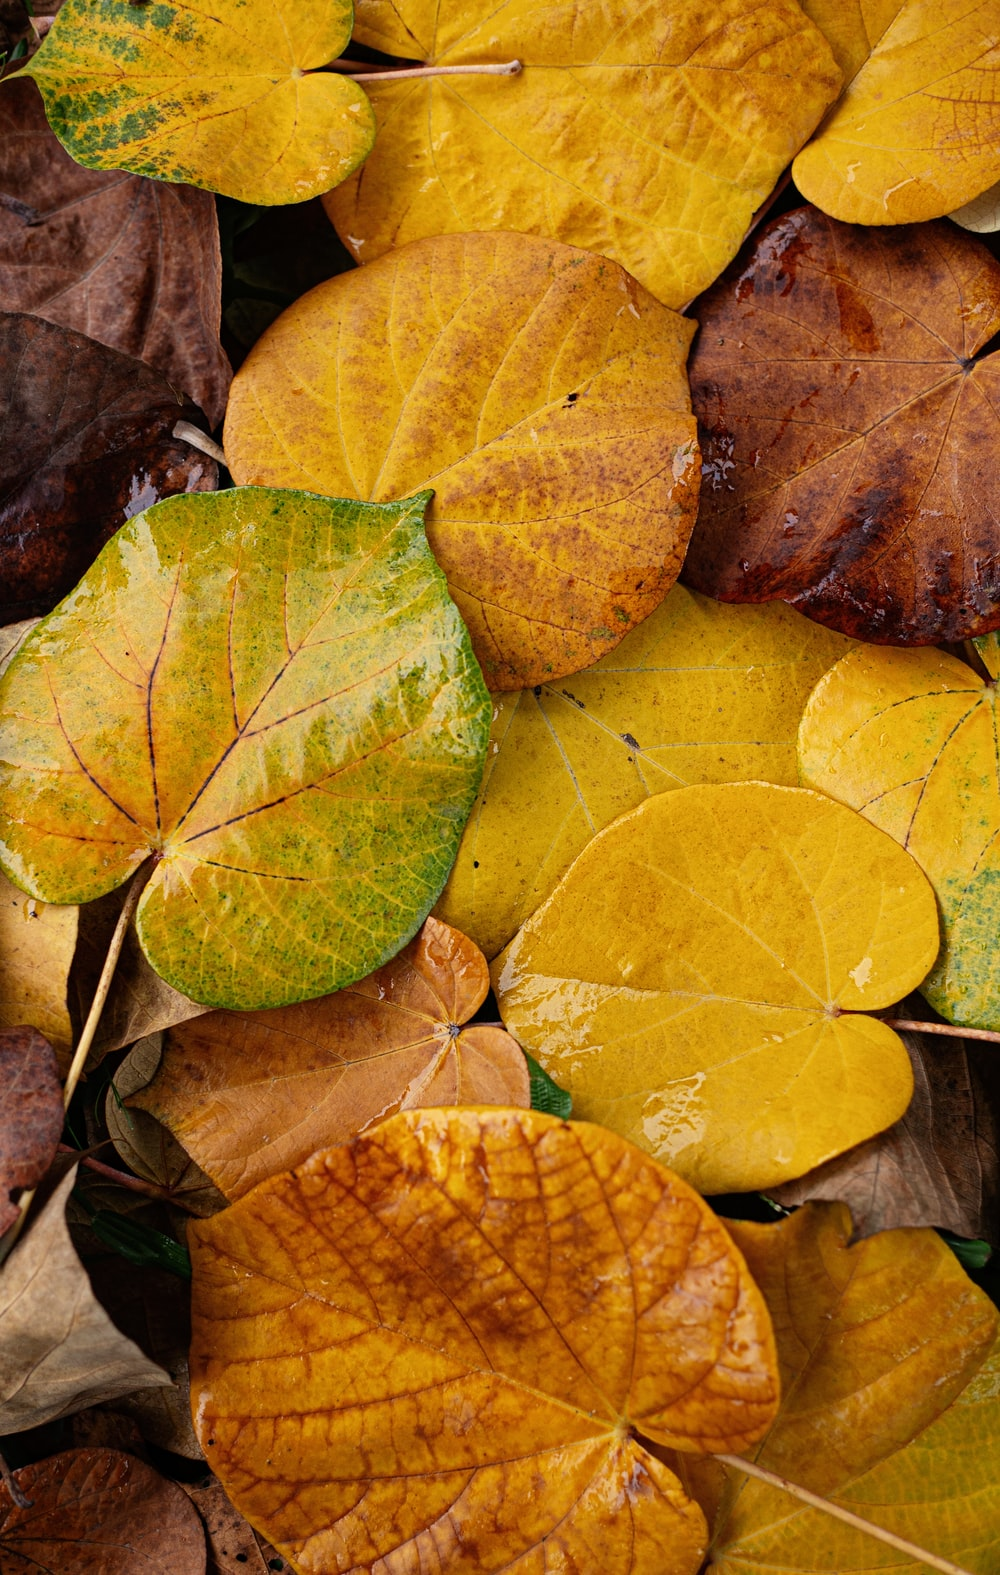 green and brown leaves on brown dried leaves